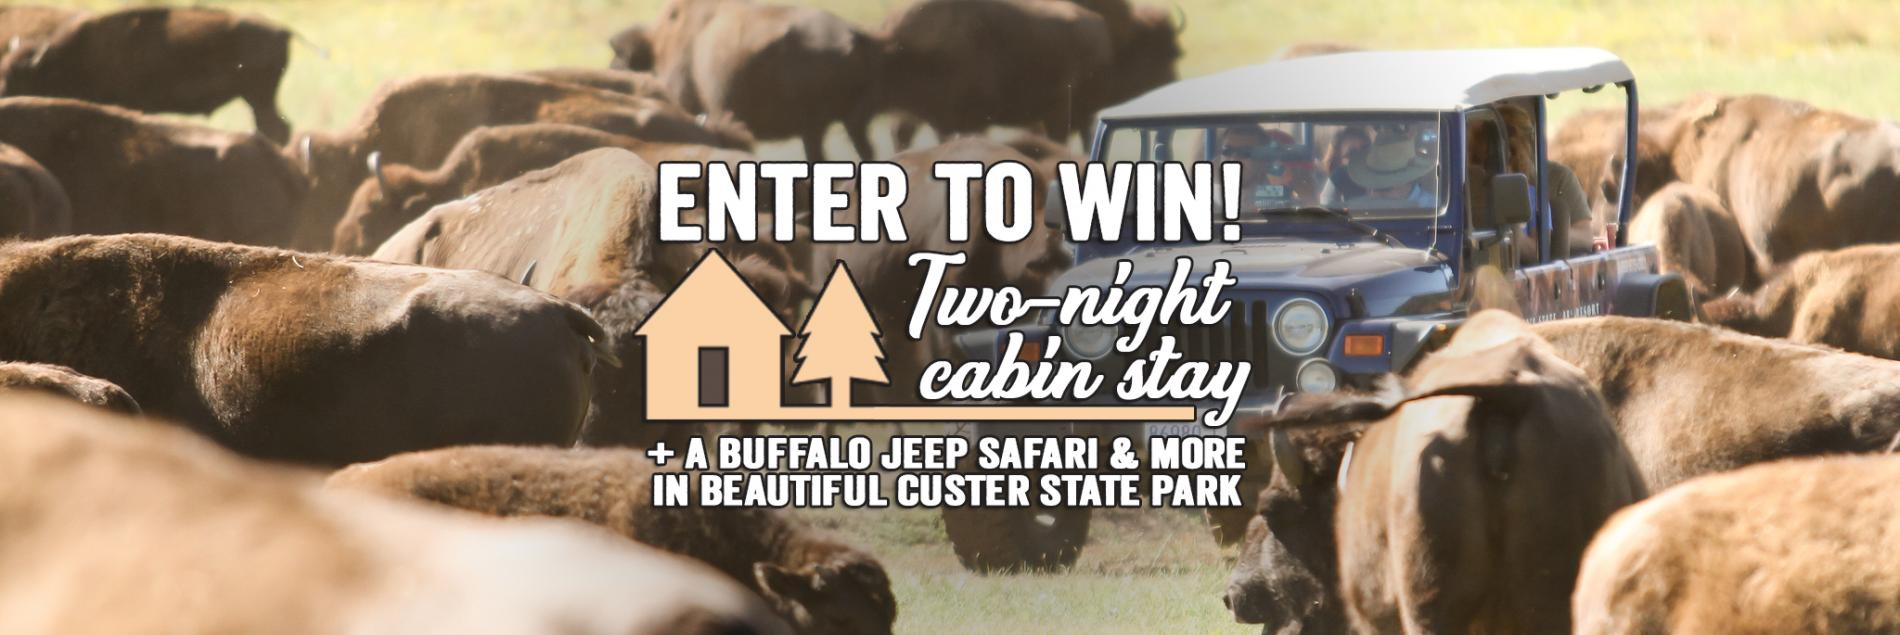 Custer State Park Giveaway